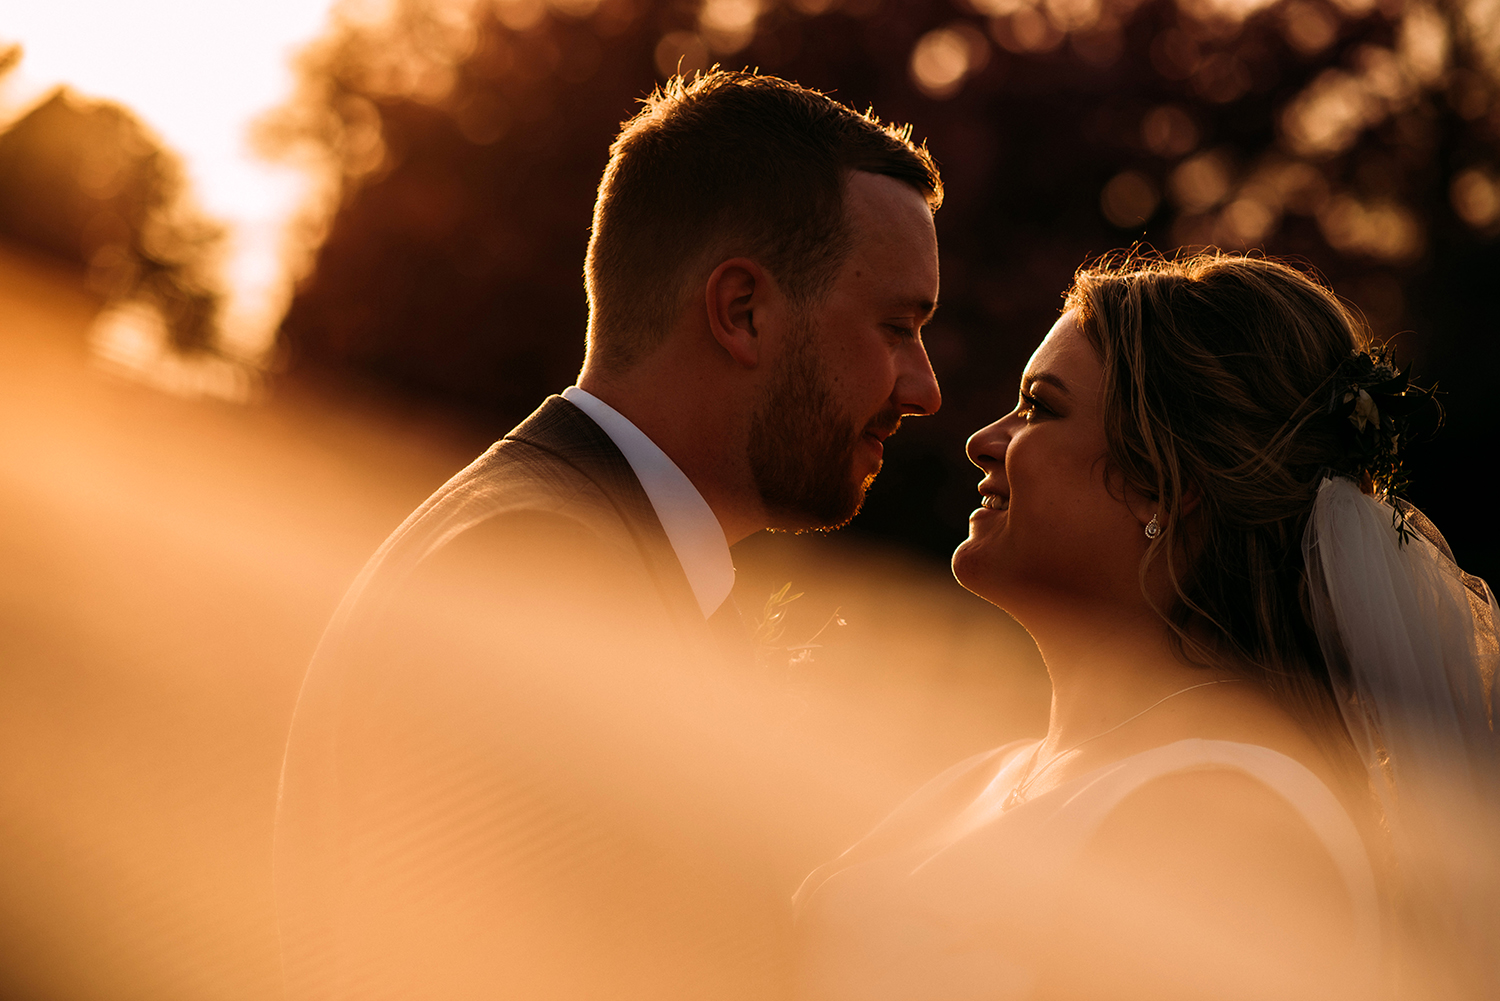 Shot of the bride and groom through the veil in the evening sun light